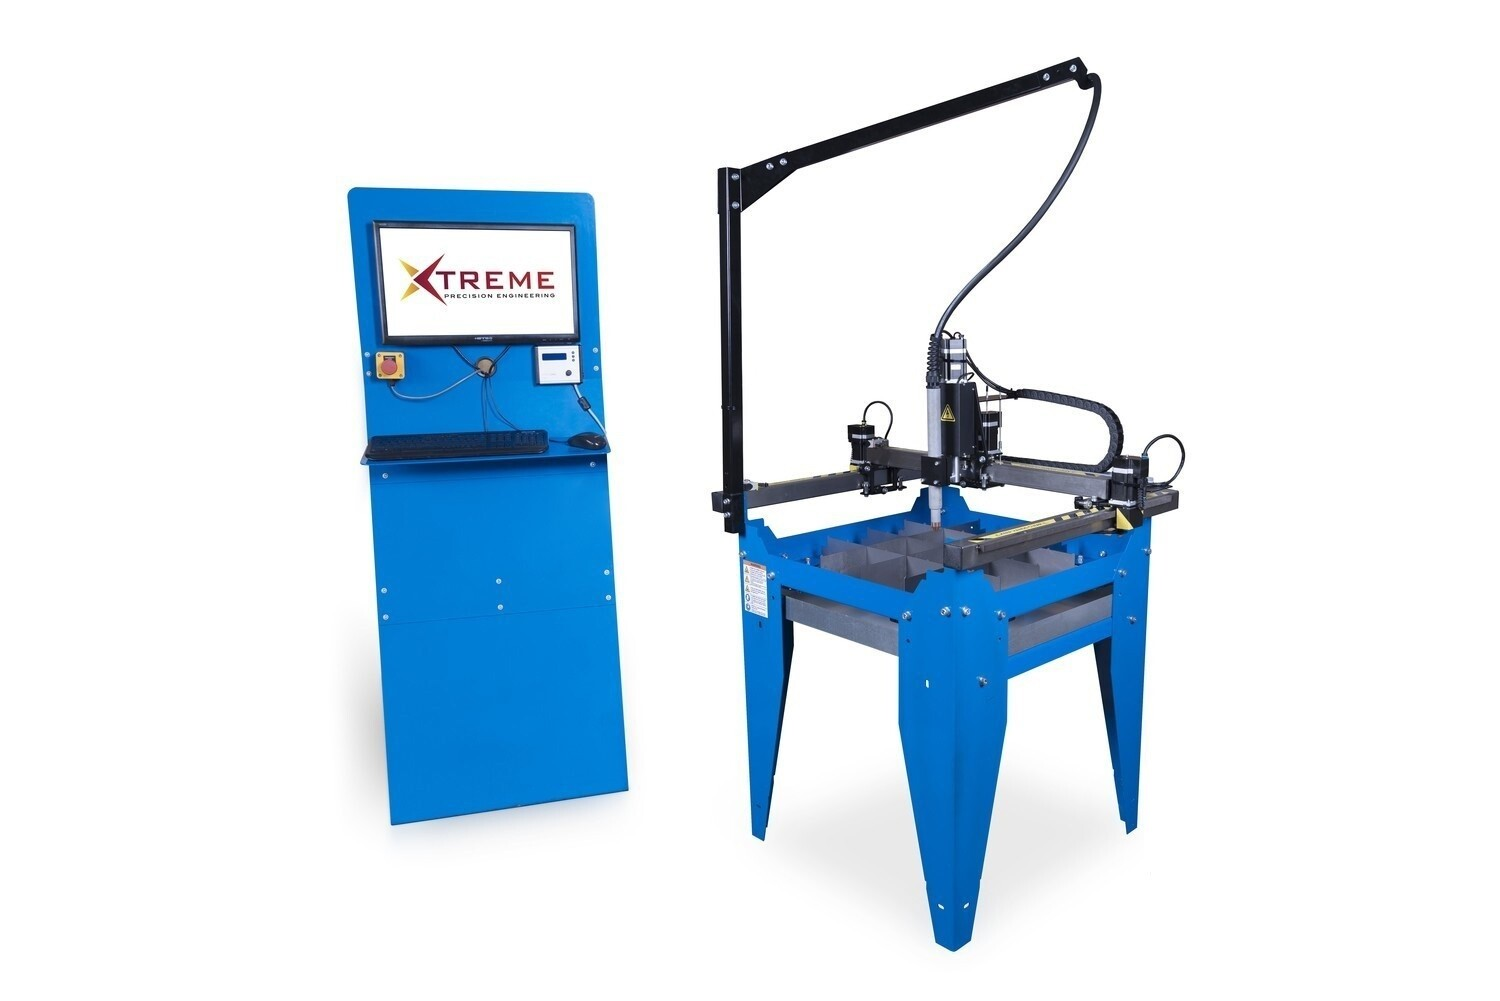 2x2 CNC Complete Plasma Cutting Table Kit  without plasma cutter